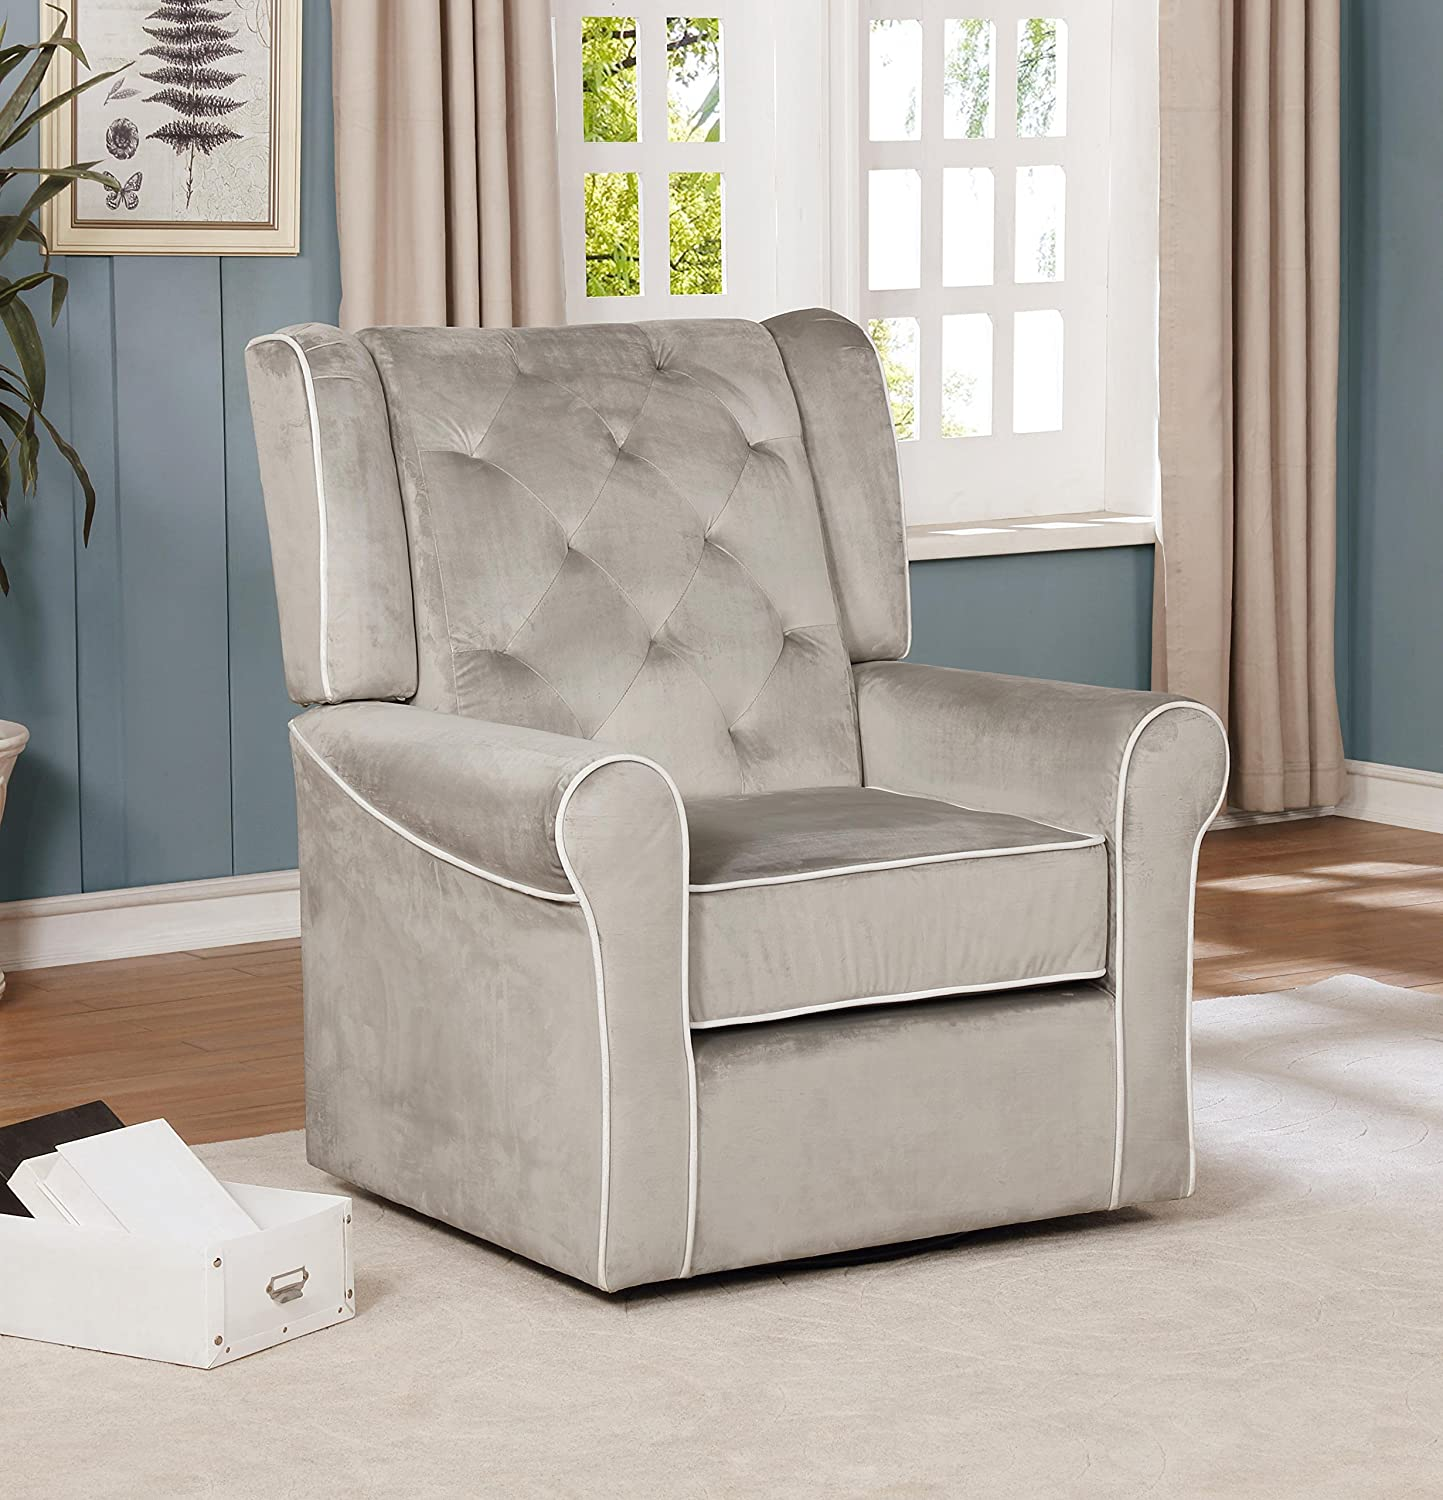 Pleasing Amazon Com Naomi Home Sophia Swivel Chair Gray Microfiber Pdpeps Interior Chair Design Pdpepsorg